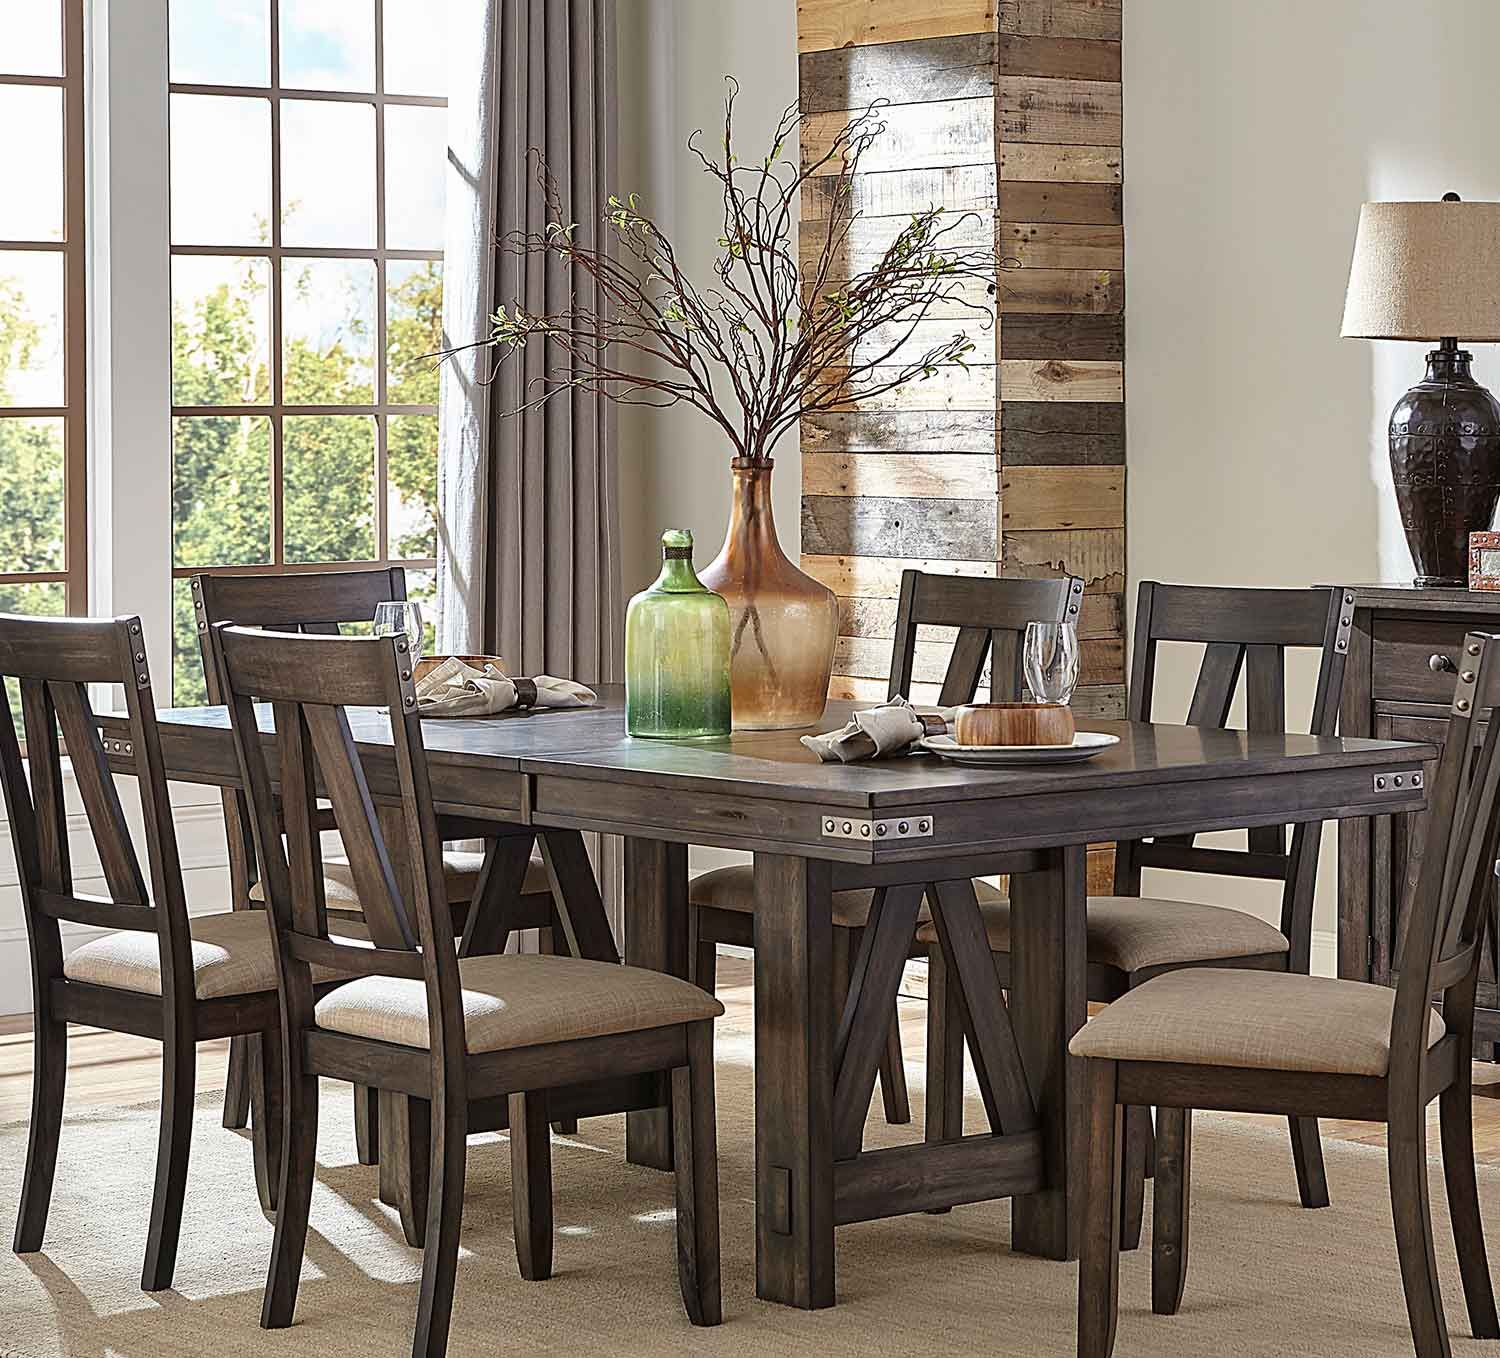 Homelegance Mattawa Rectangular Dining Table with Butterfly